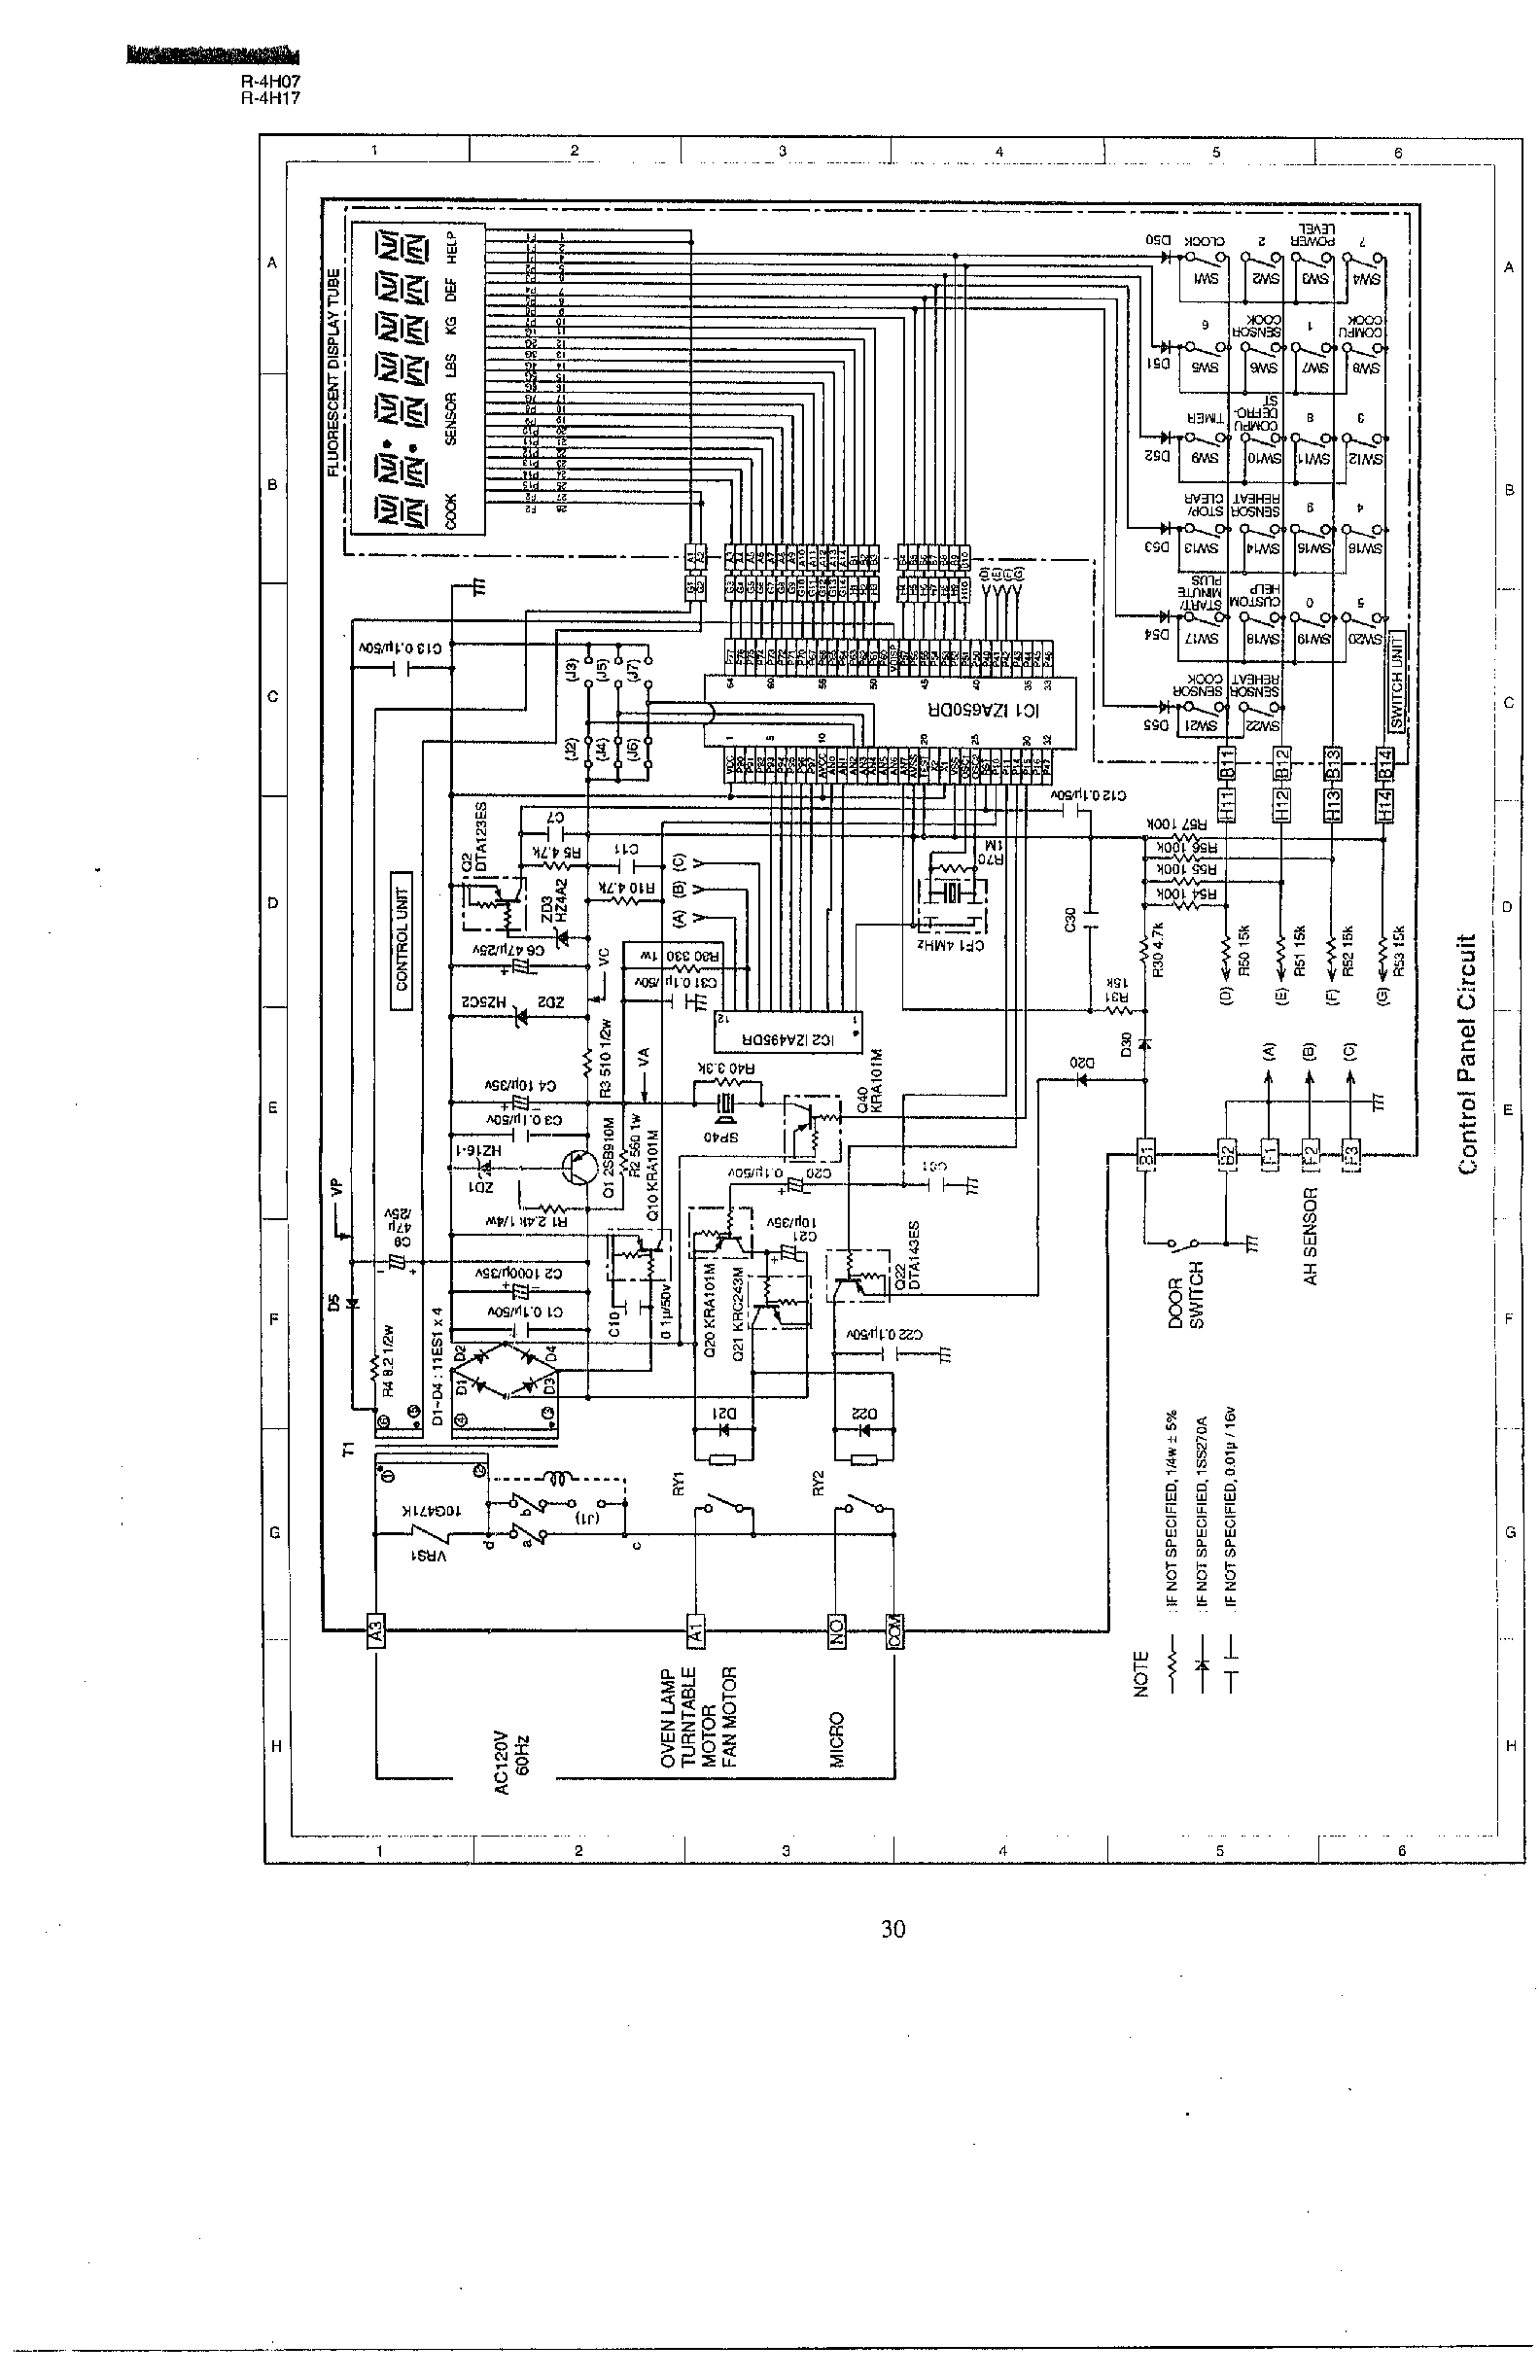 Humidity Wiring Diagram, Humidity, Free Engine Image For